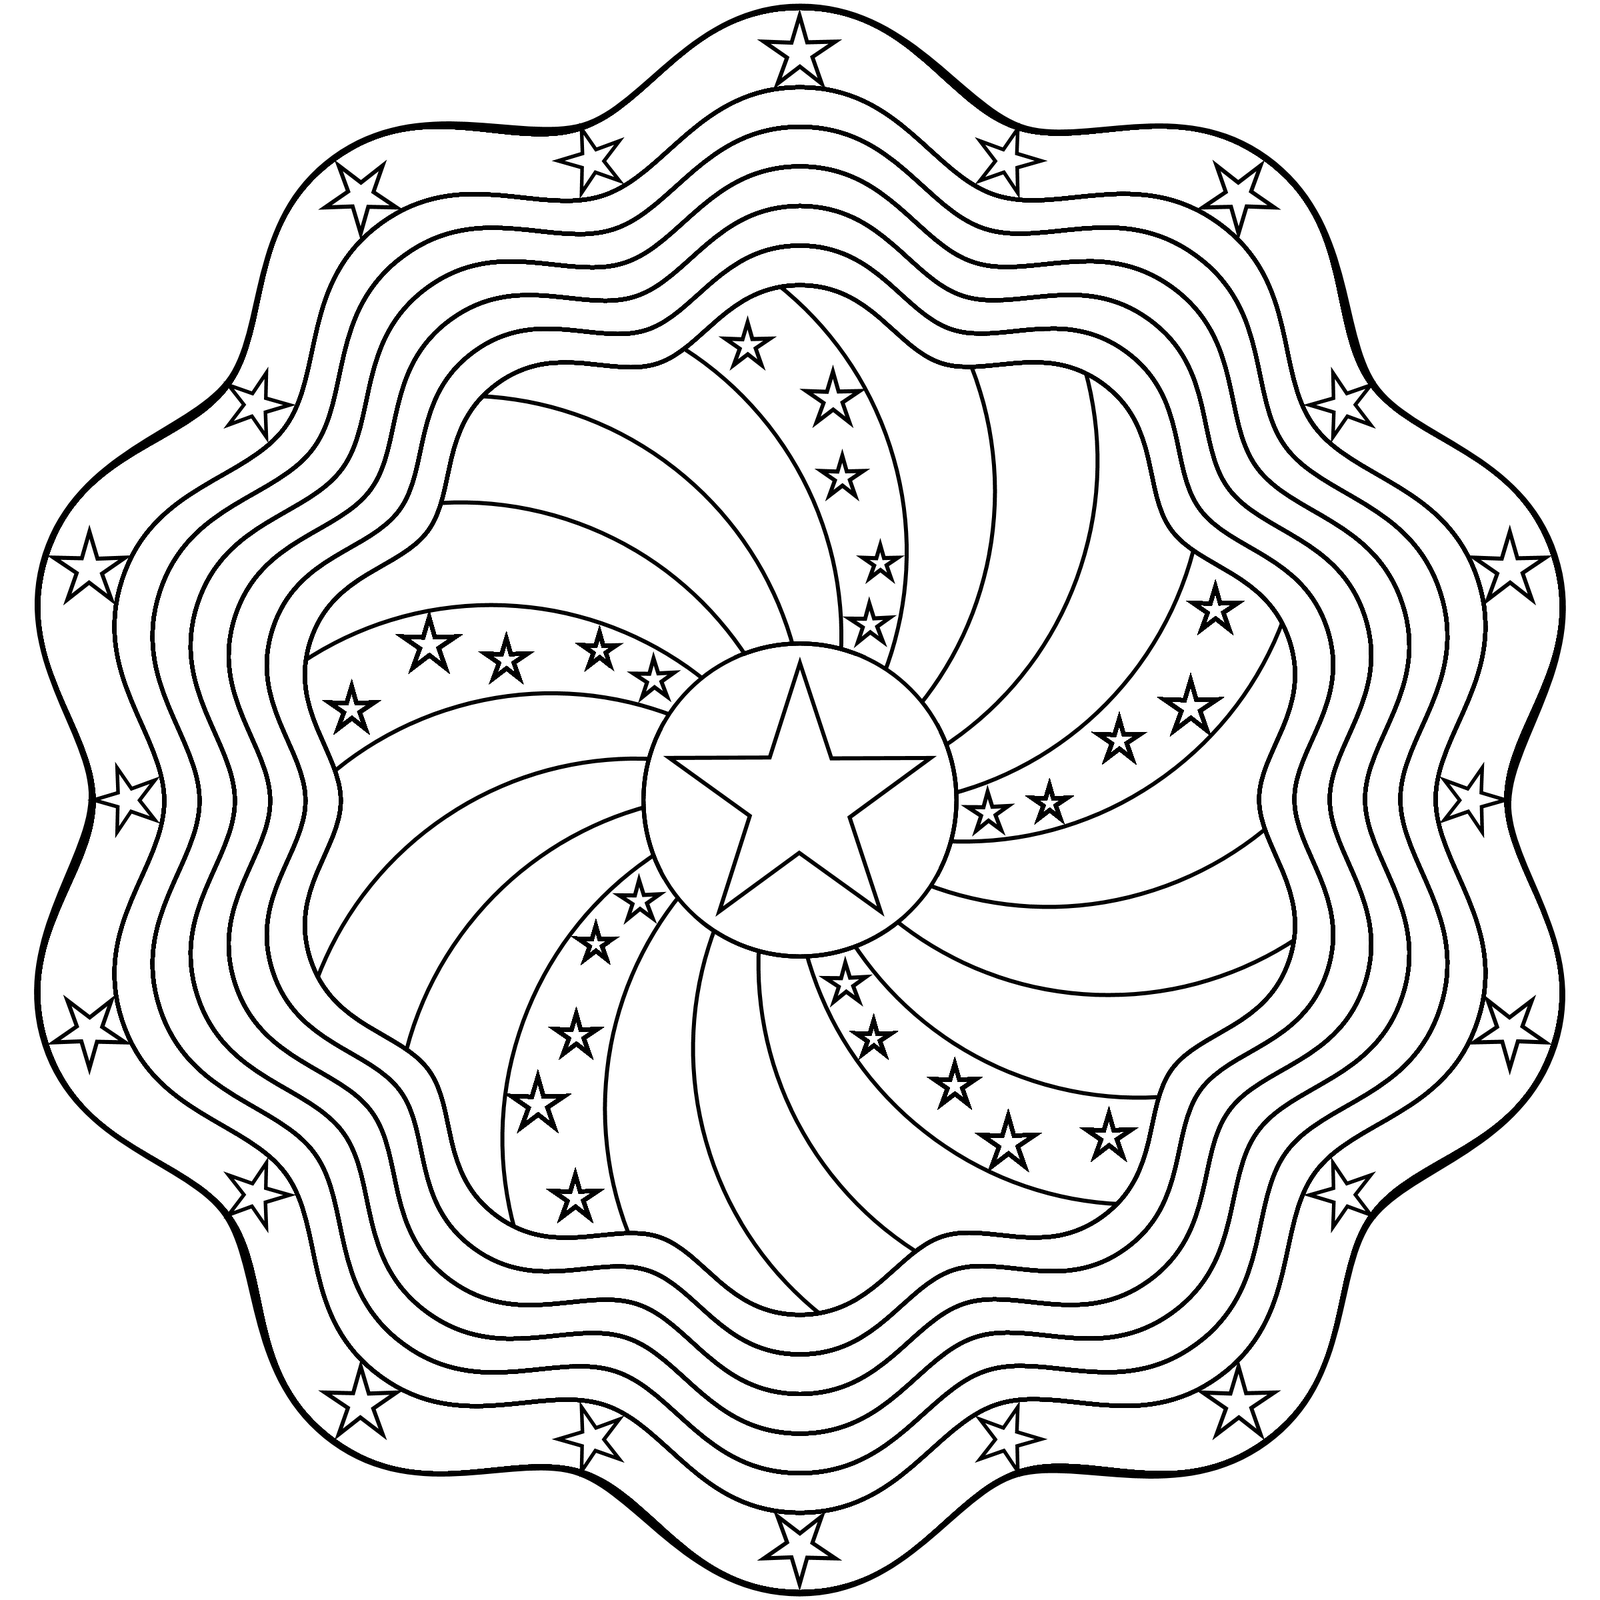 Mandala Coloring Pages Free Coloring Pages 54 Free Printable